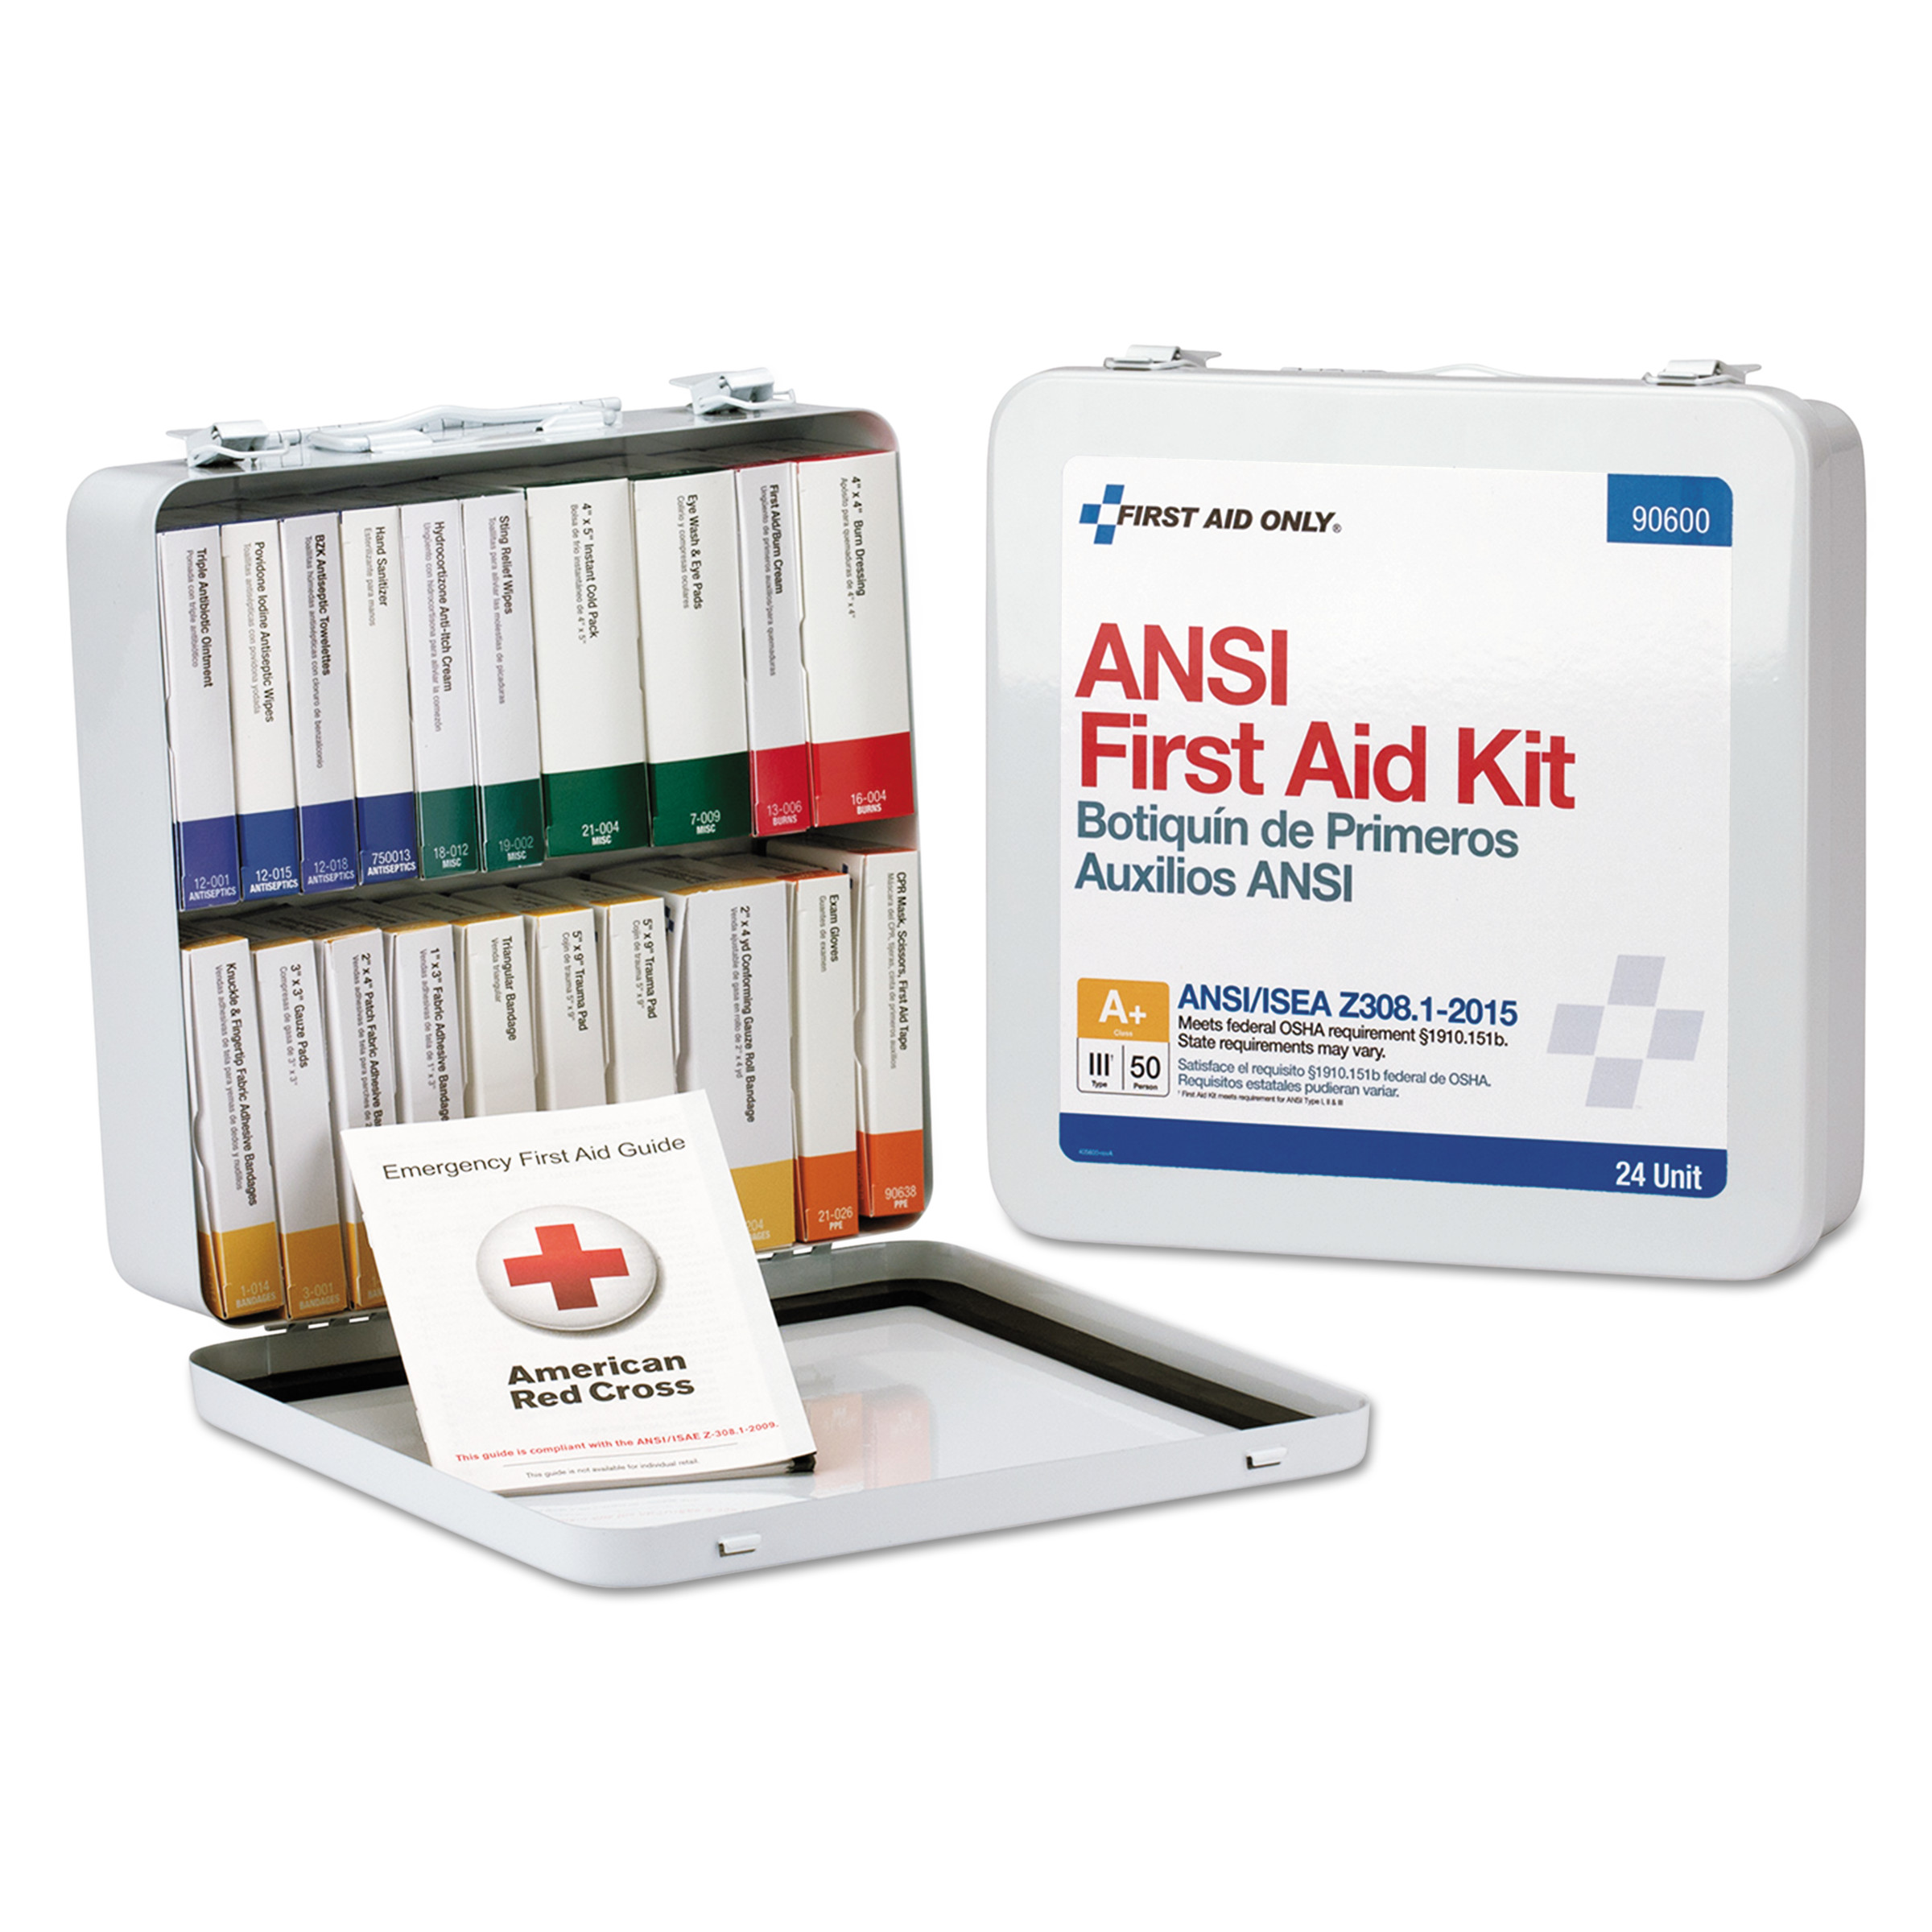 First Aid Only Unitized ANSI Class A Weatherproof First Aid Kit for 50 People, 24 Units